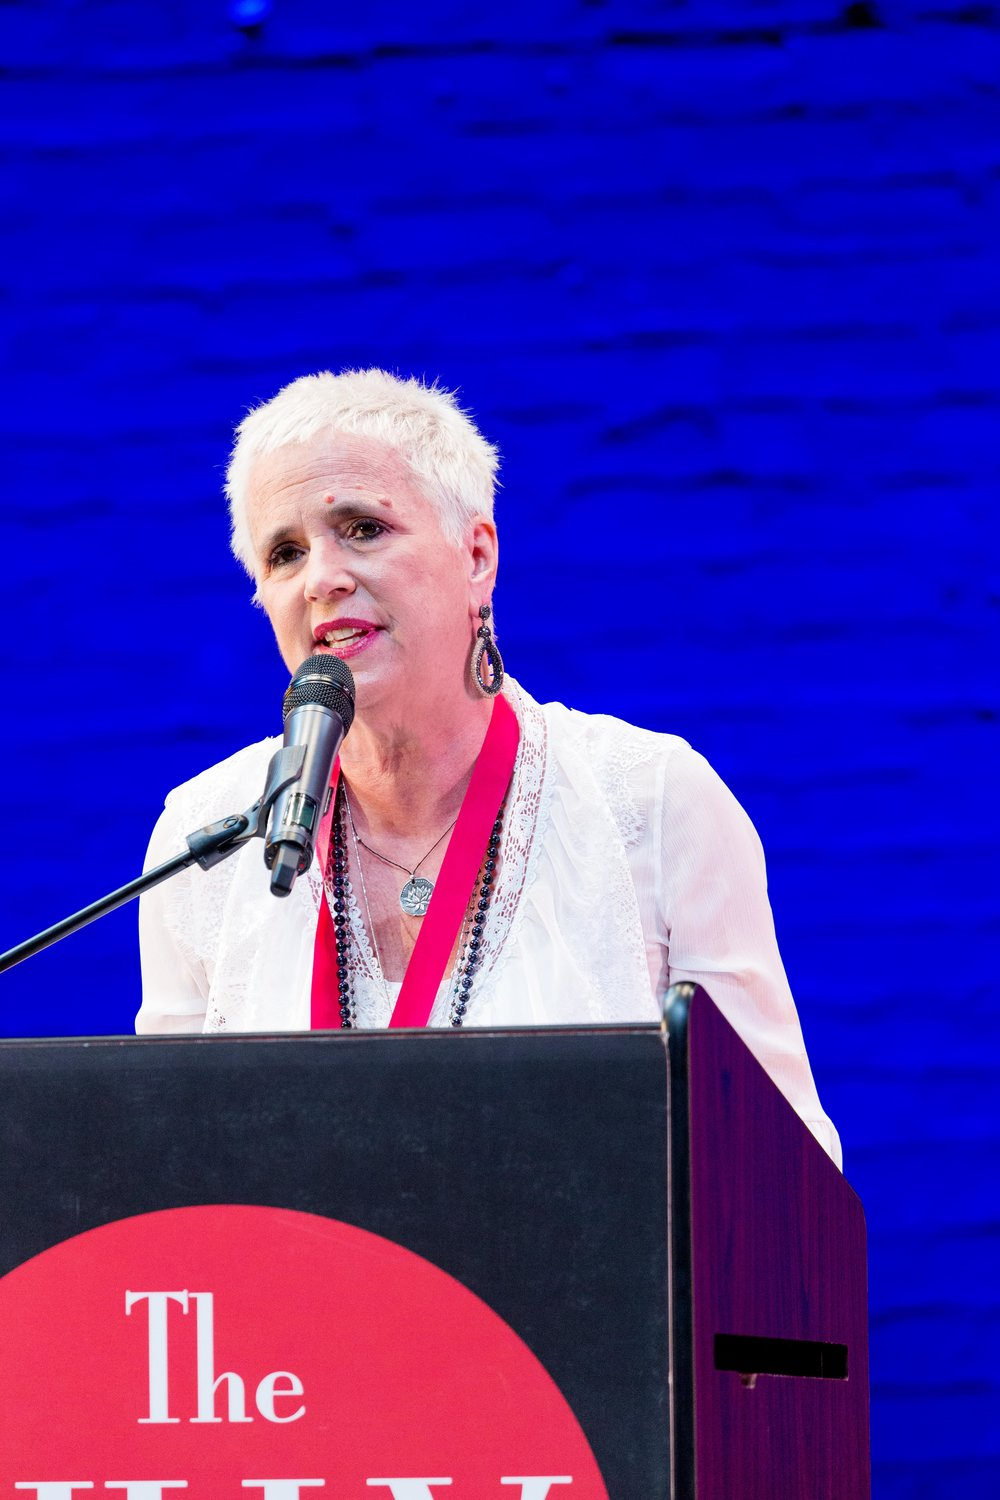 Dear Young Women Playwrights - by Eve EnslerOn May 21, 2018, the You've Changed the World Award was given to Eve Ensler at the ninth annual Lilly Awards celebration. The complete text from her rousing speech is published here with Eve's permission.